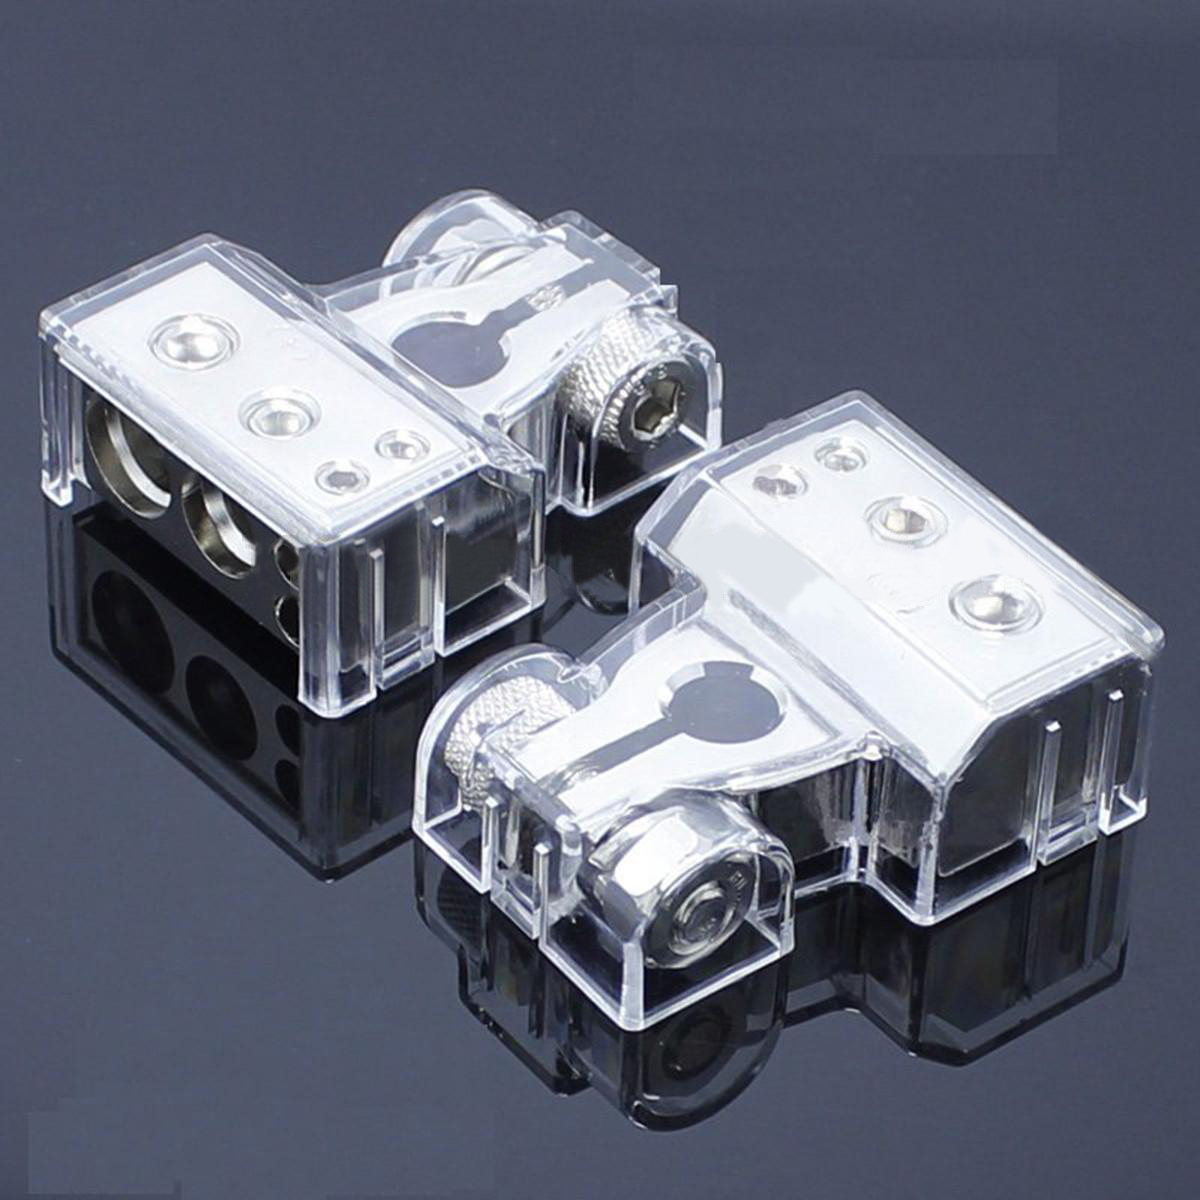 1 Pair New Car Battery Terminal 2/4/8 Gauge AWG Positive & Negative Clamp Connector Battery Silver promotion battery terminal clamp clips connector car truck auto vehicle parts brass battery switch 5